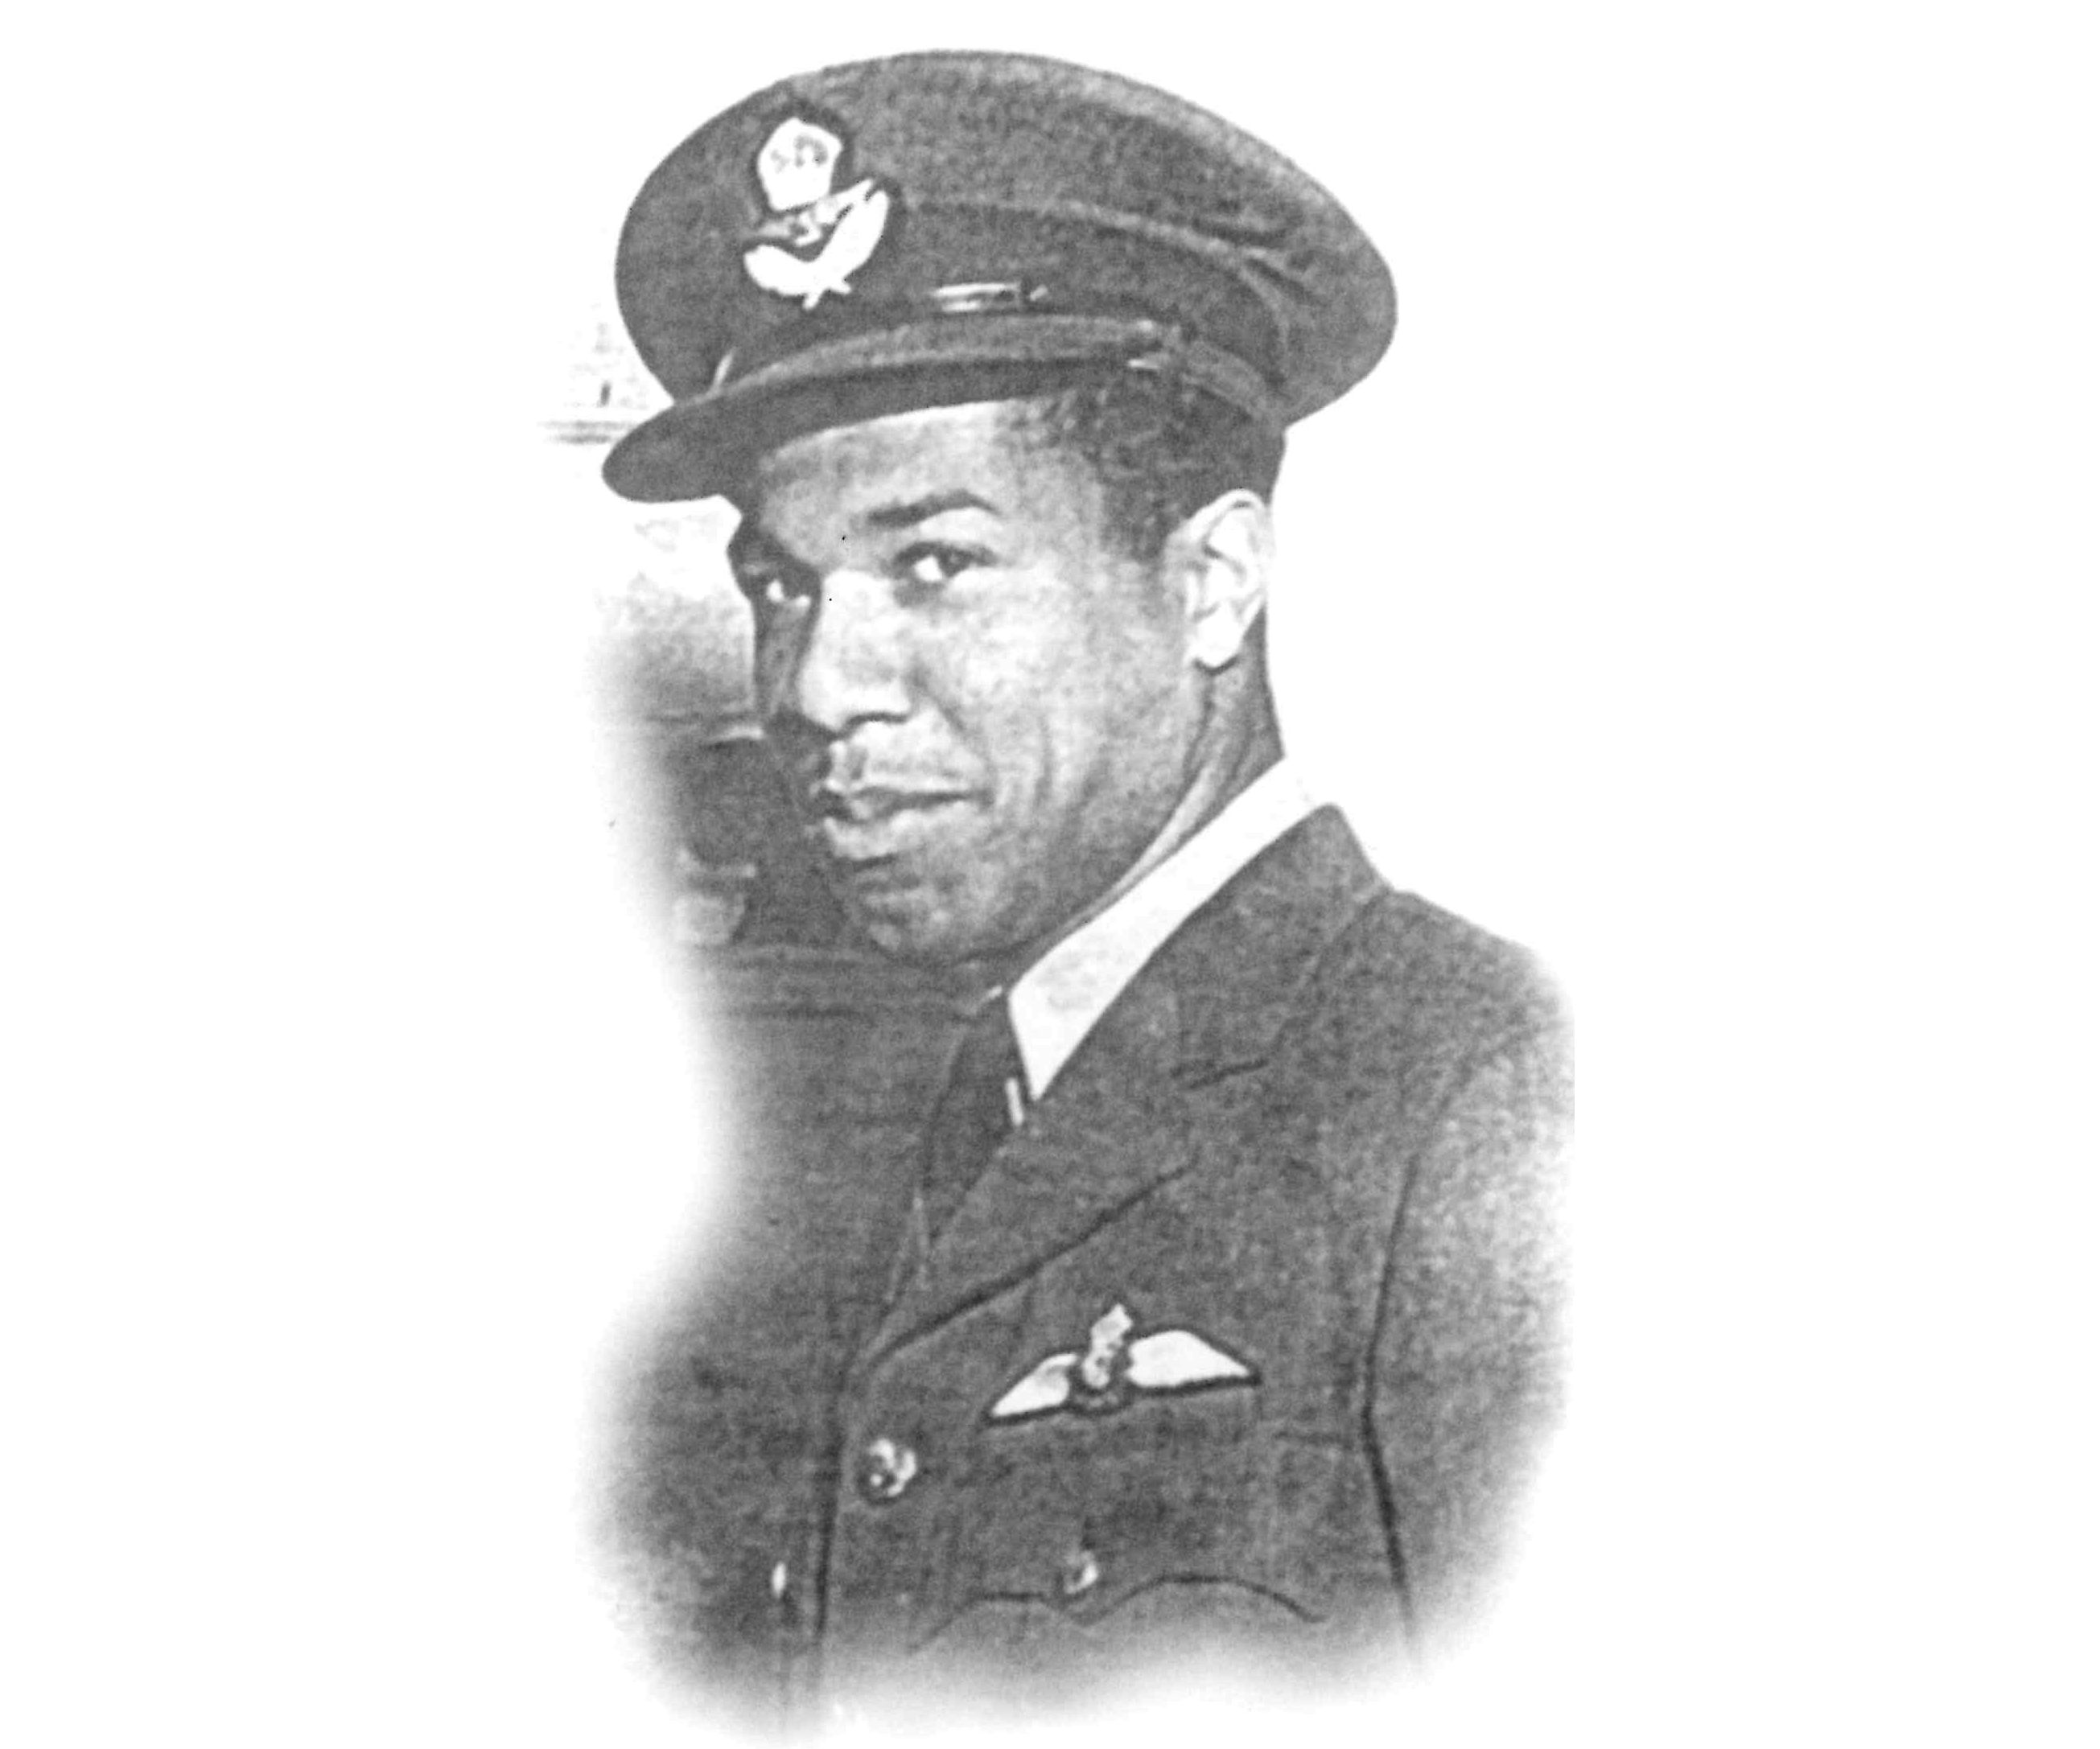 Flying Officer Allan Bundy was one of about 100 Black Canadians who served in the Royal Canadian Air Force during the Second World War. He joined in June 1942 and was possibly the first Canadian Black pilot in the RCAF. He served with 404 Squadron flying Beaufighter and Mosquito aircraft in the highly dangerous anti-shipping role. PHOTO: Maritime Command Museum